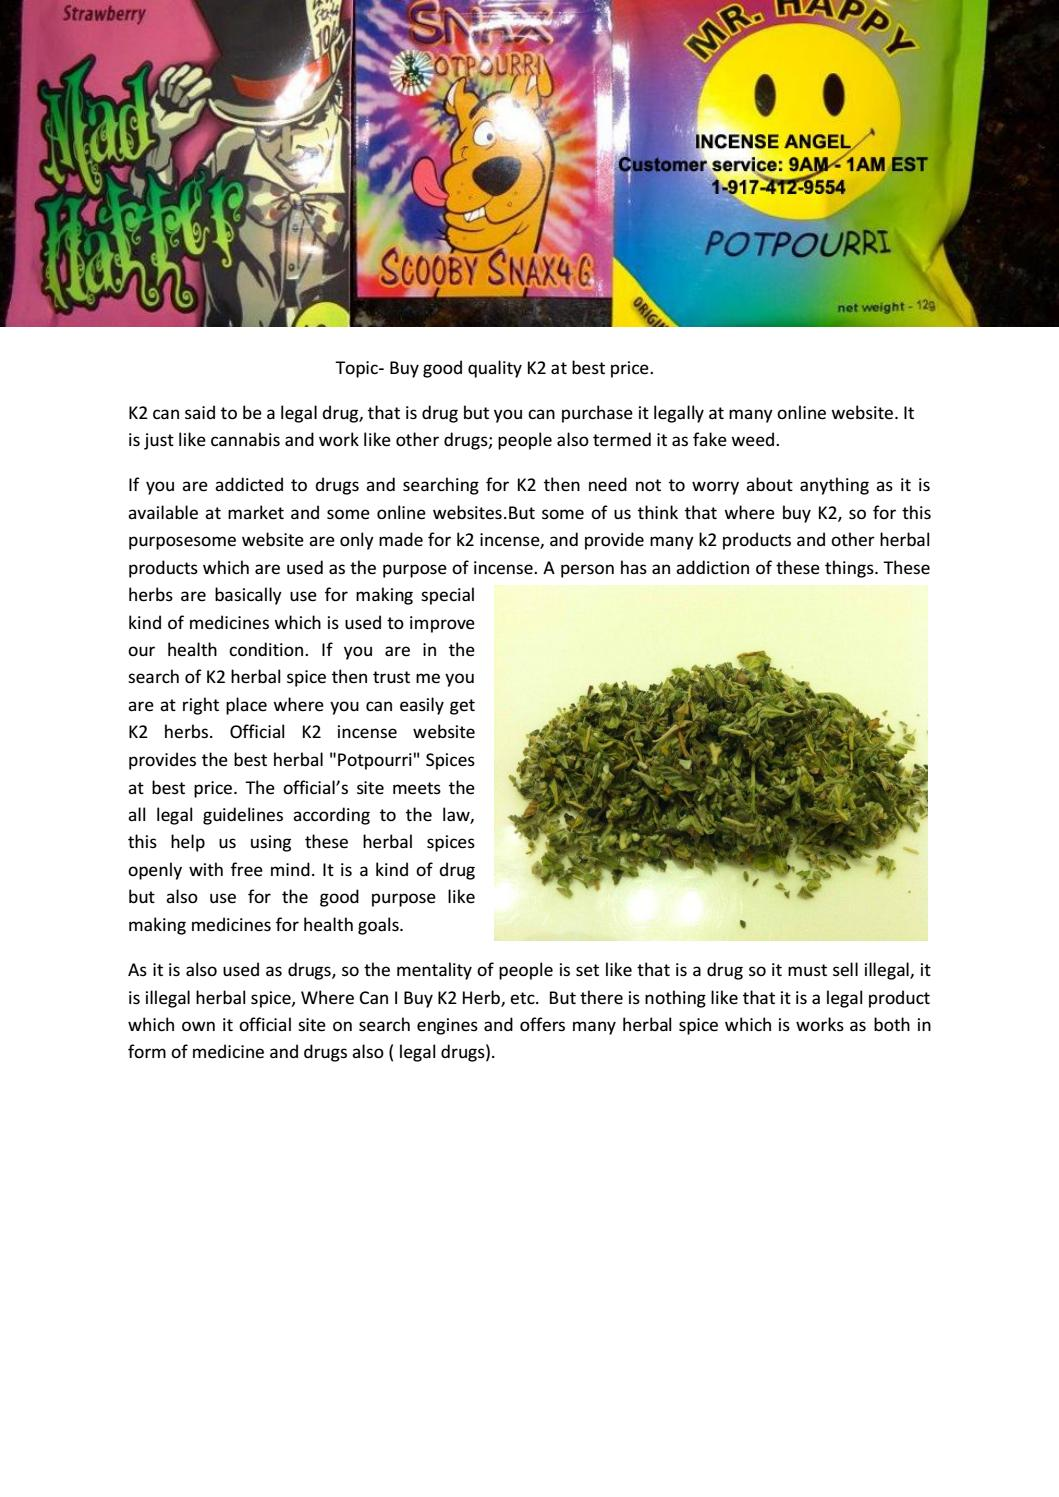 Cheap herbal incense by incenseangel - issuu